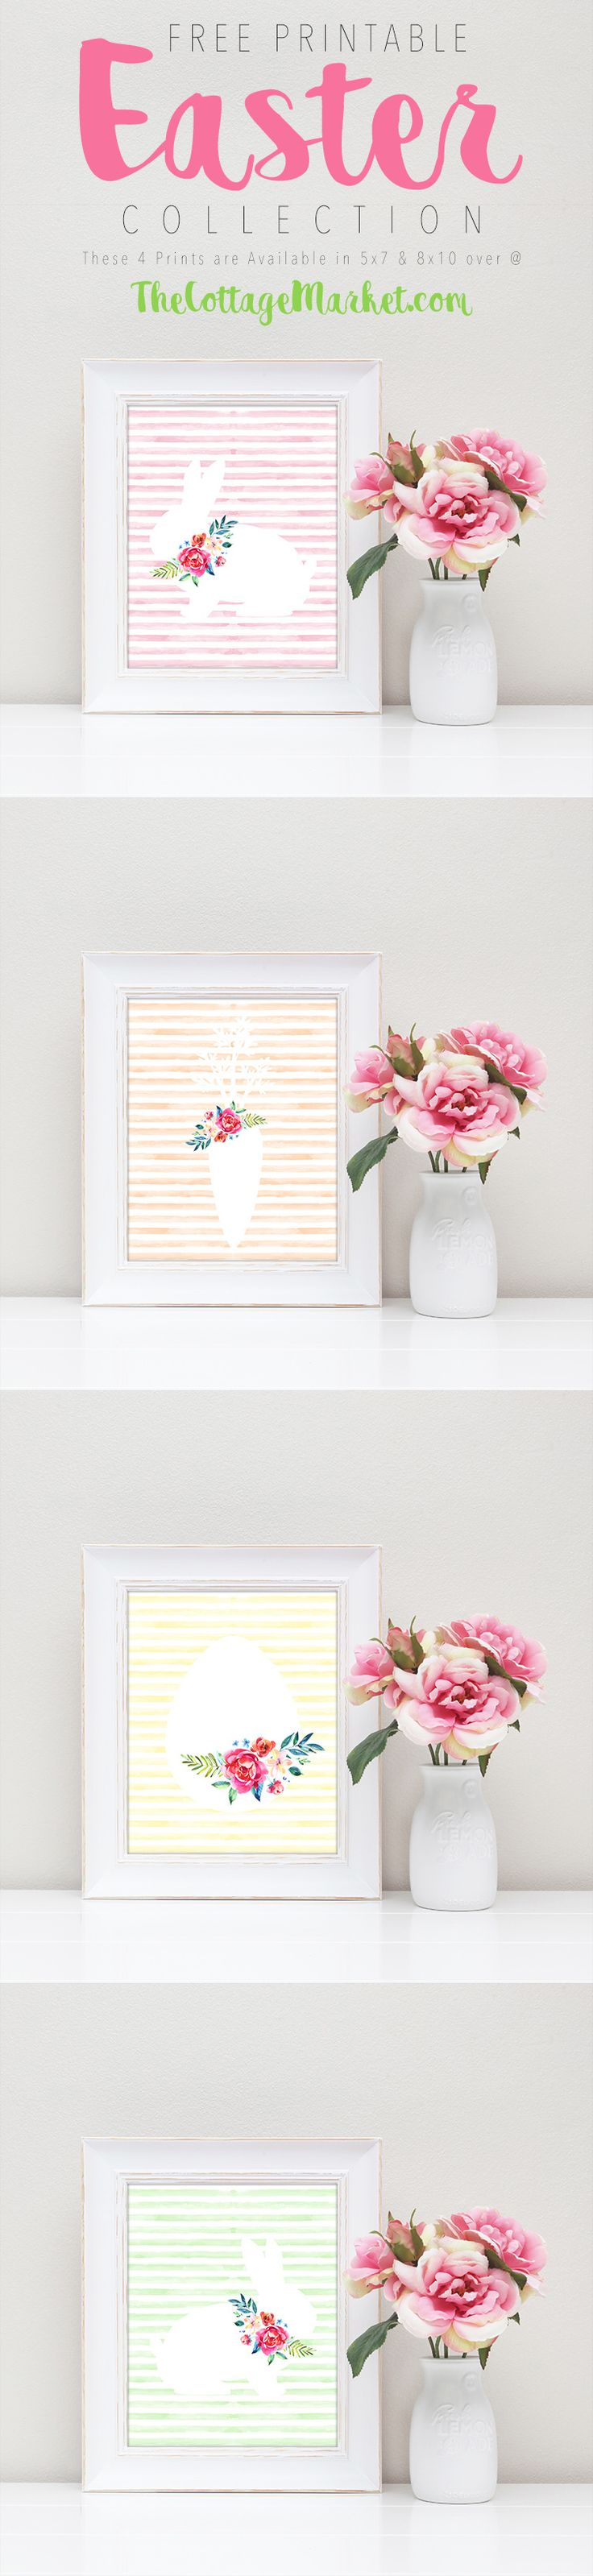 Free Printable Easter Collection... A set of 4 Pastel Prints that will make your walls and shelves smile!